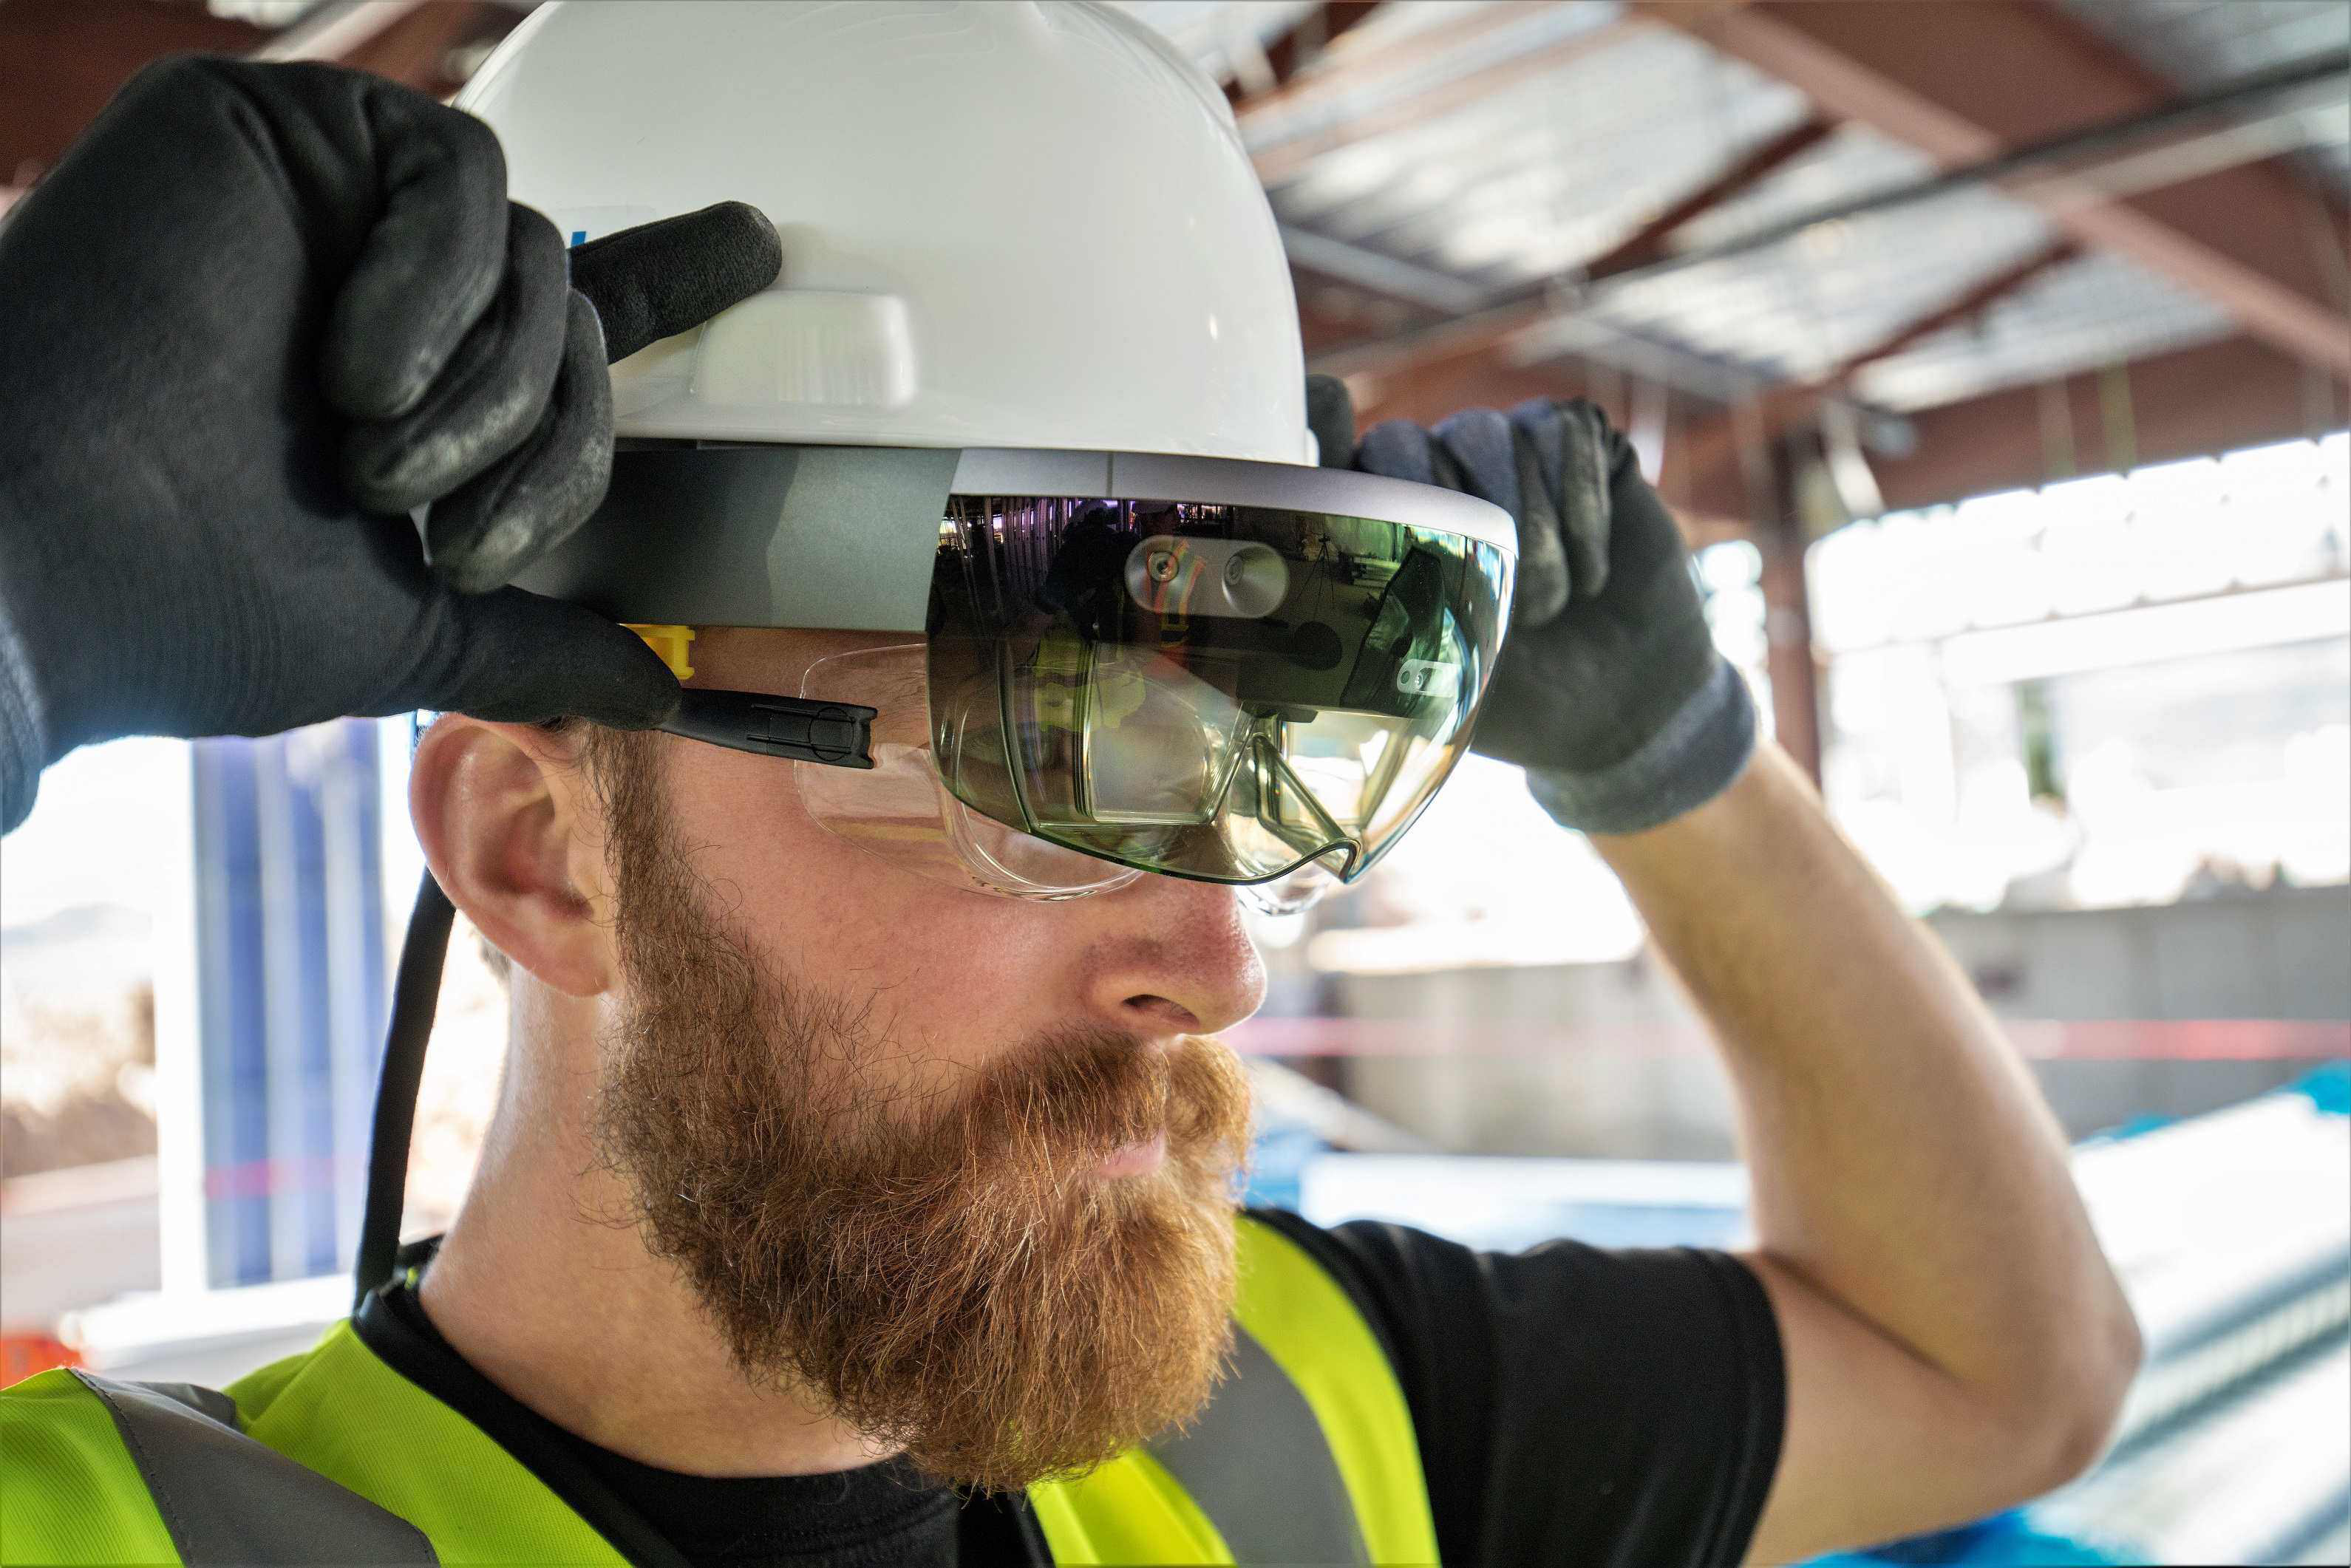 3D virtual reality comes to the jobsite with Trimble's HoloLens